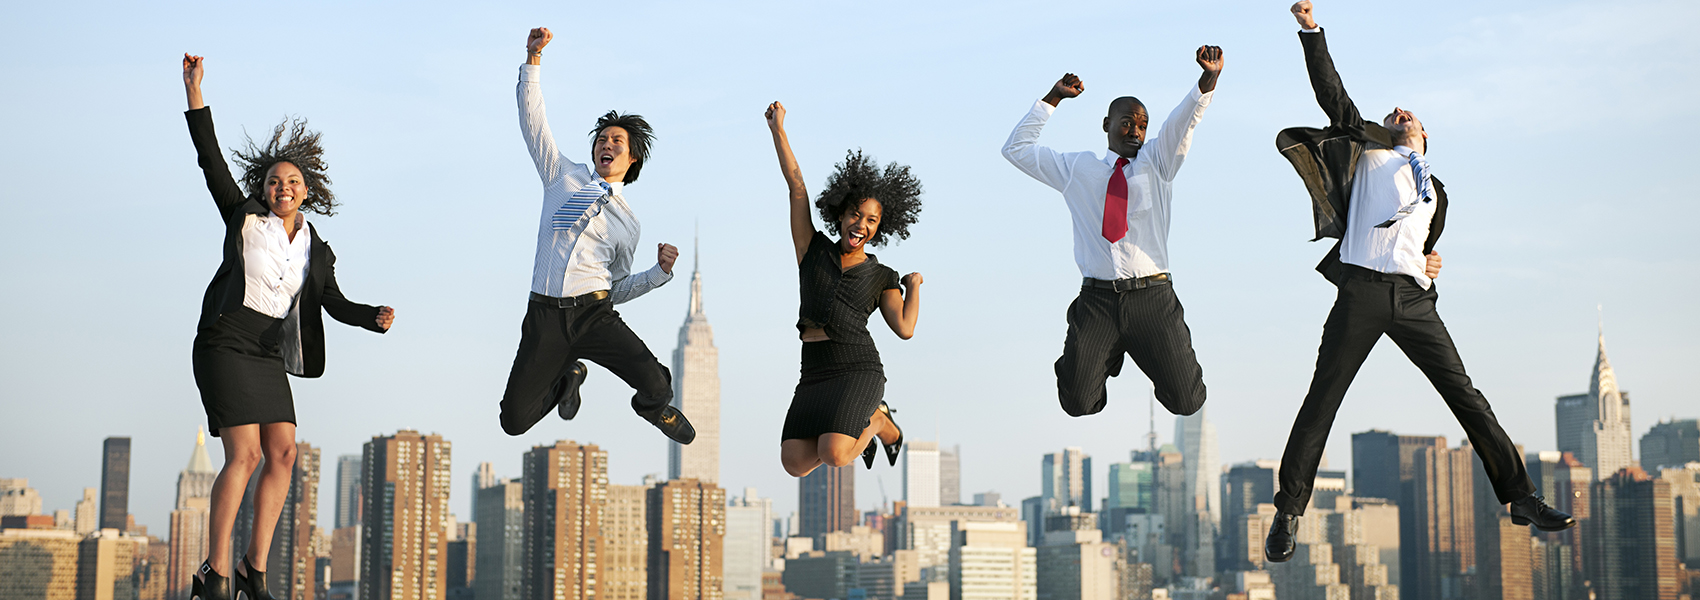 5 professionals jumping up in the air with joy